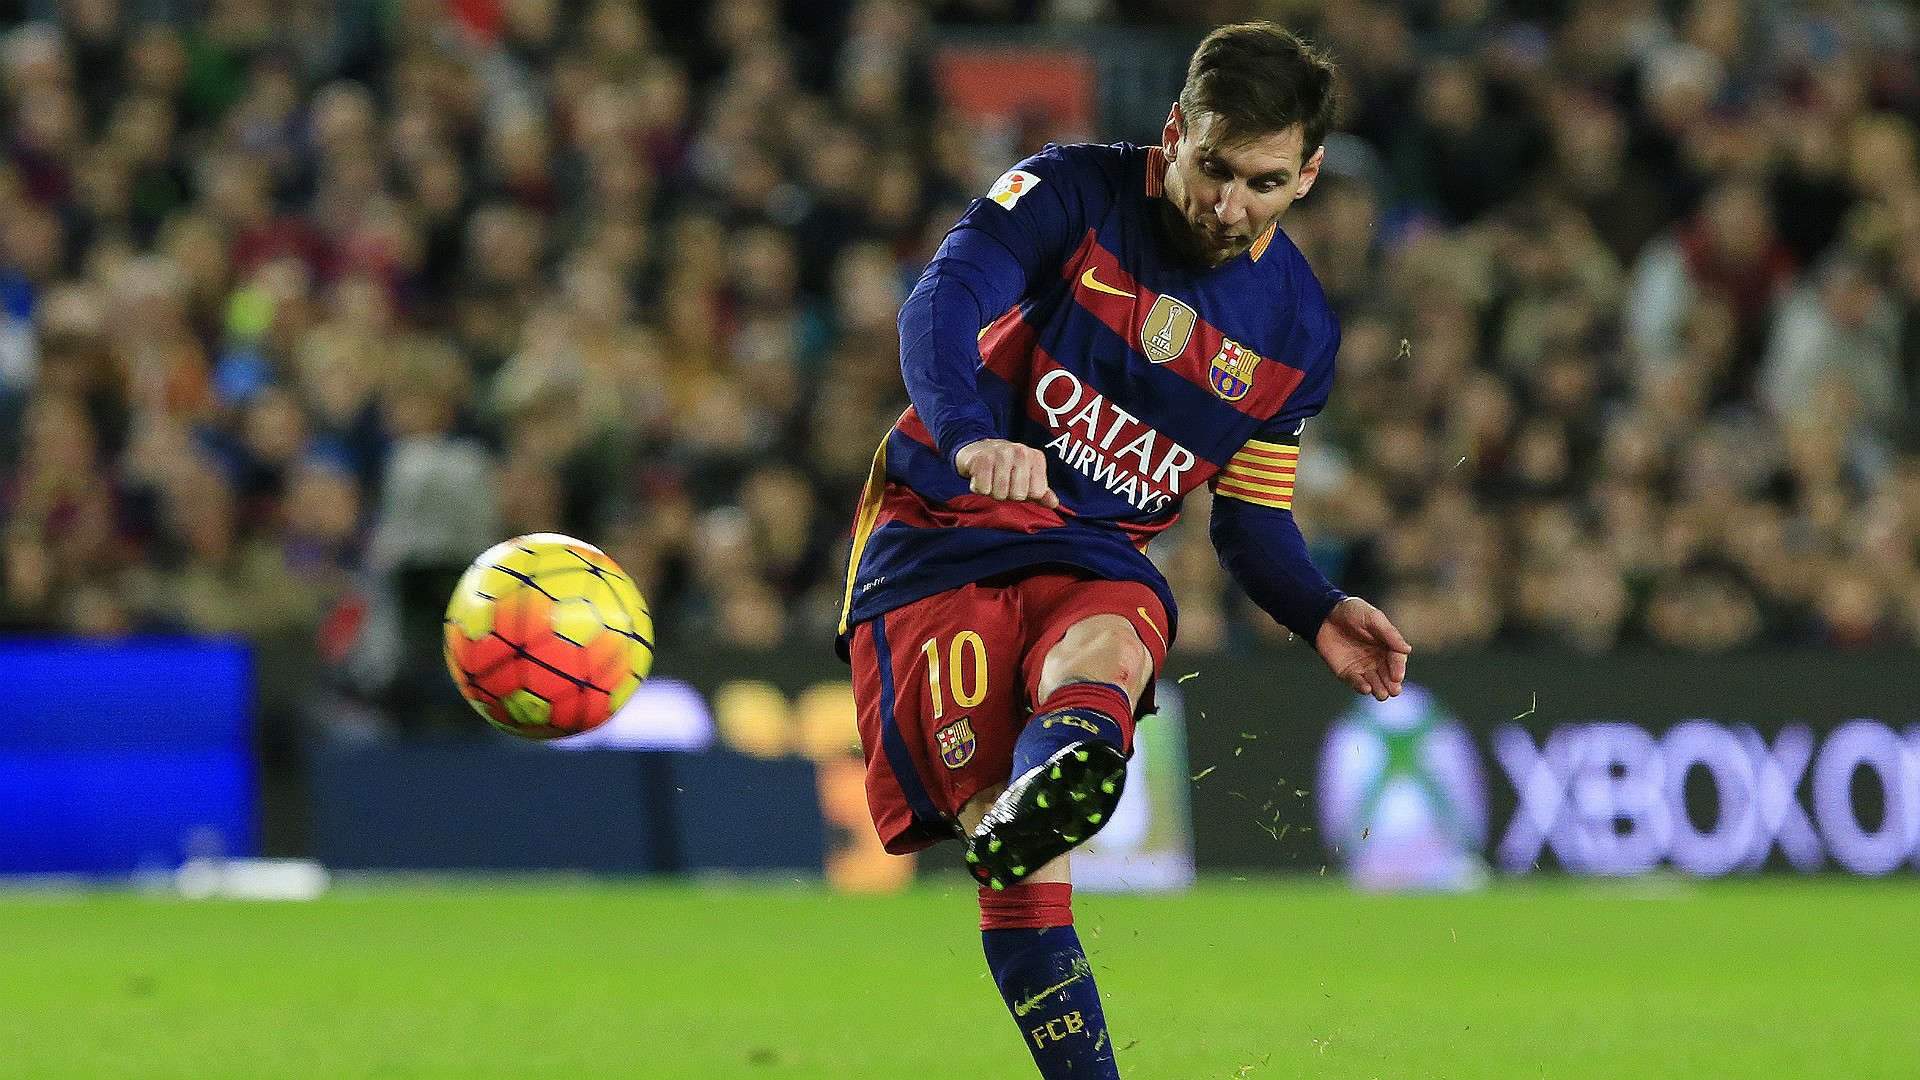 Wallpaper Messi HD Wallpapers 1080p 2015 Upload at January 7 2016 1920x1080